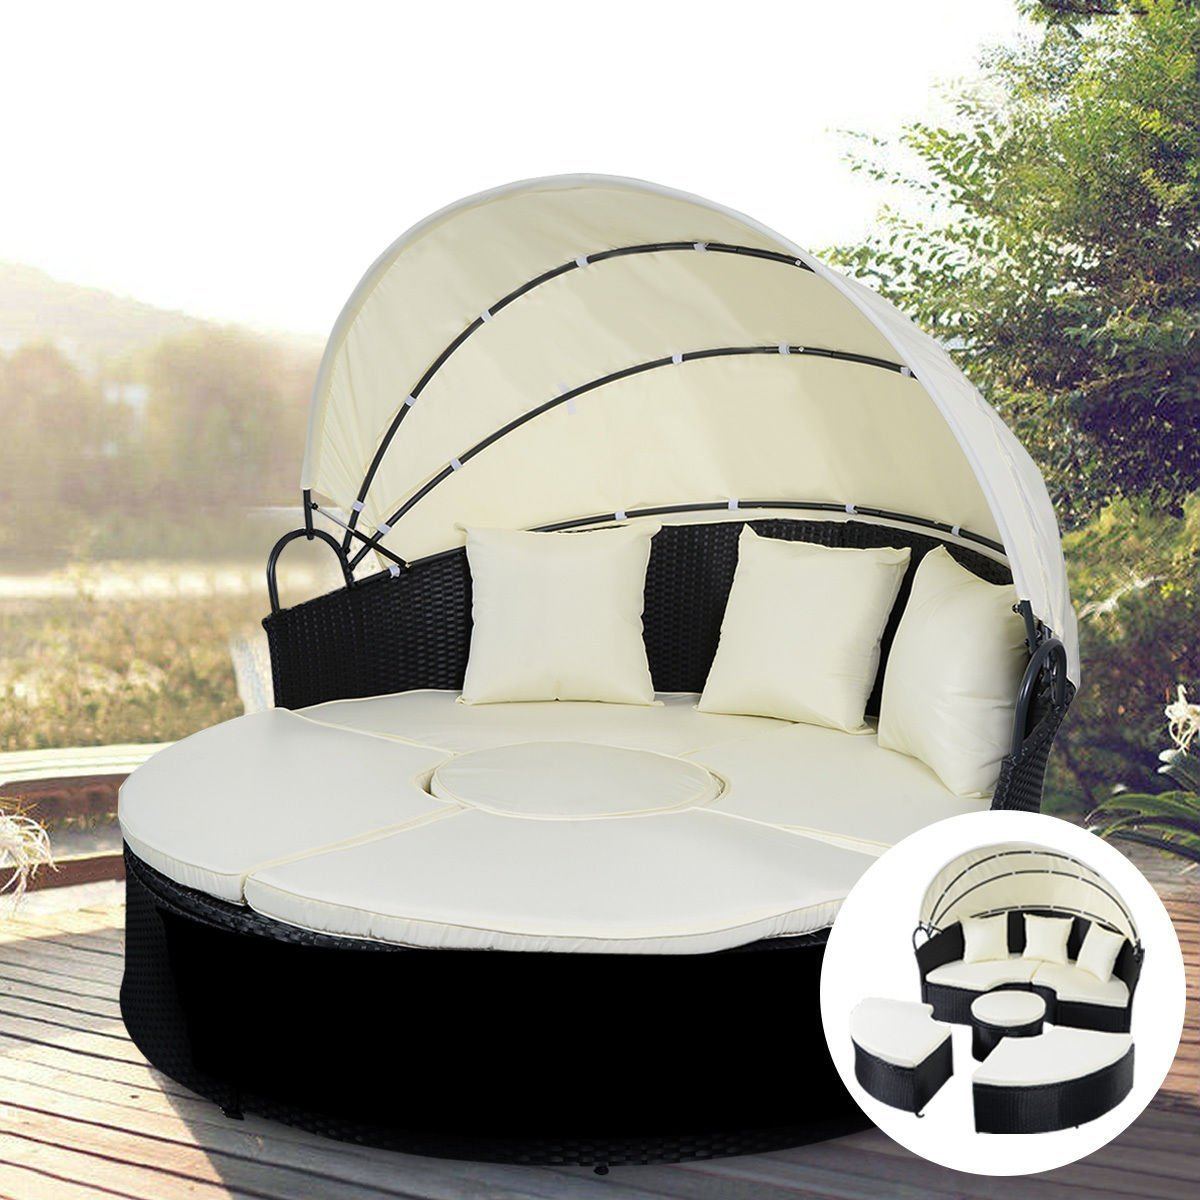 Amazon.com : Tangkula Daybed Patio Sofa Furniture Round Retractable Canopy  Wicker Rattan Outdoor : Garden & Outdoor